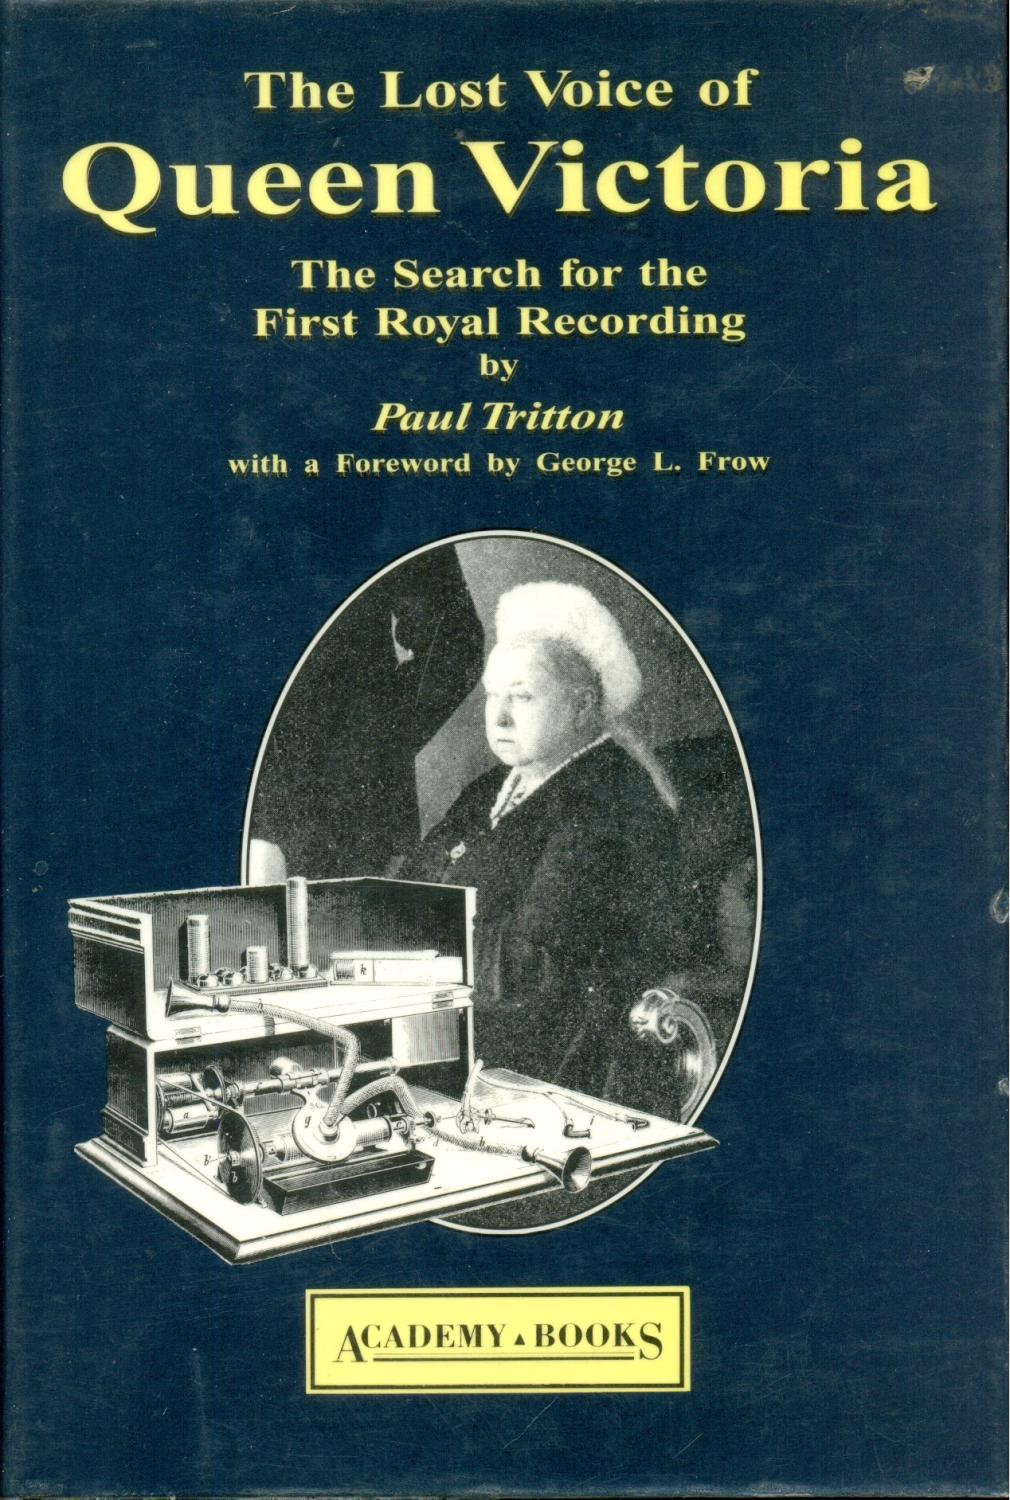 The Lost Voice of Queen Victoria : The Search for the First Royal Recording - Tritton, Paul